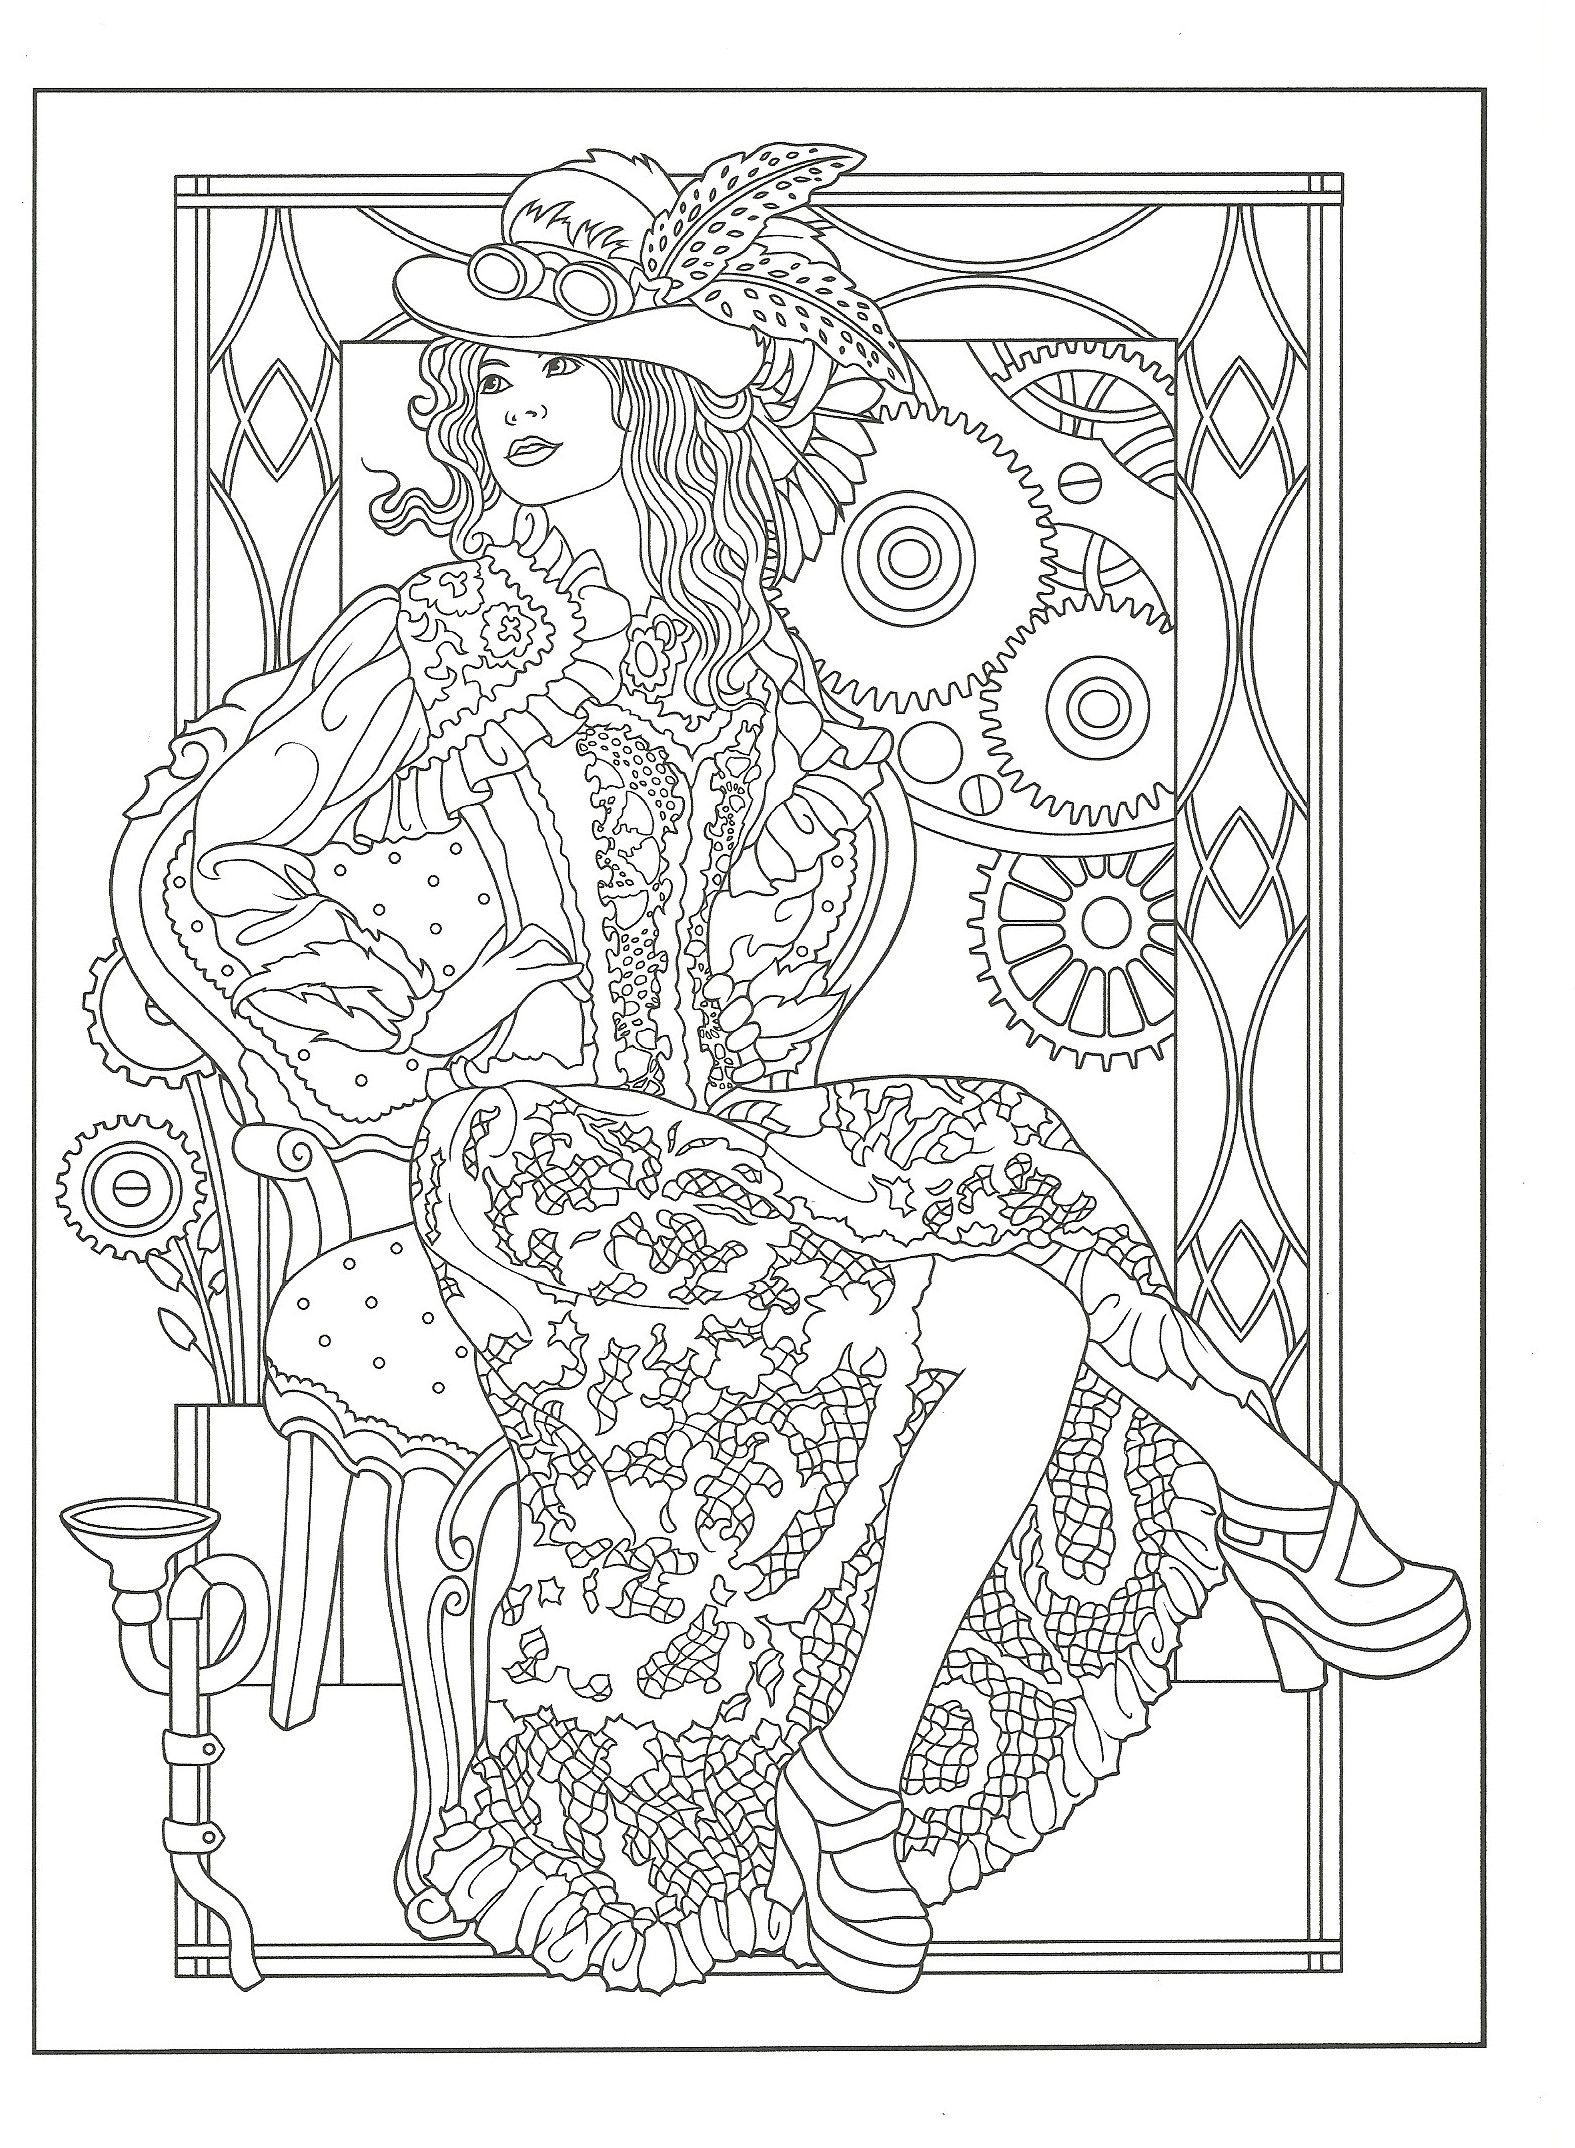 Steampunk Coloring From Creative Haven Steampunk Fashions Coloring Book Dover Publications Steampunk Coloring Coloring Pages Fashion Coloring Book